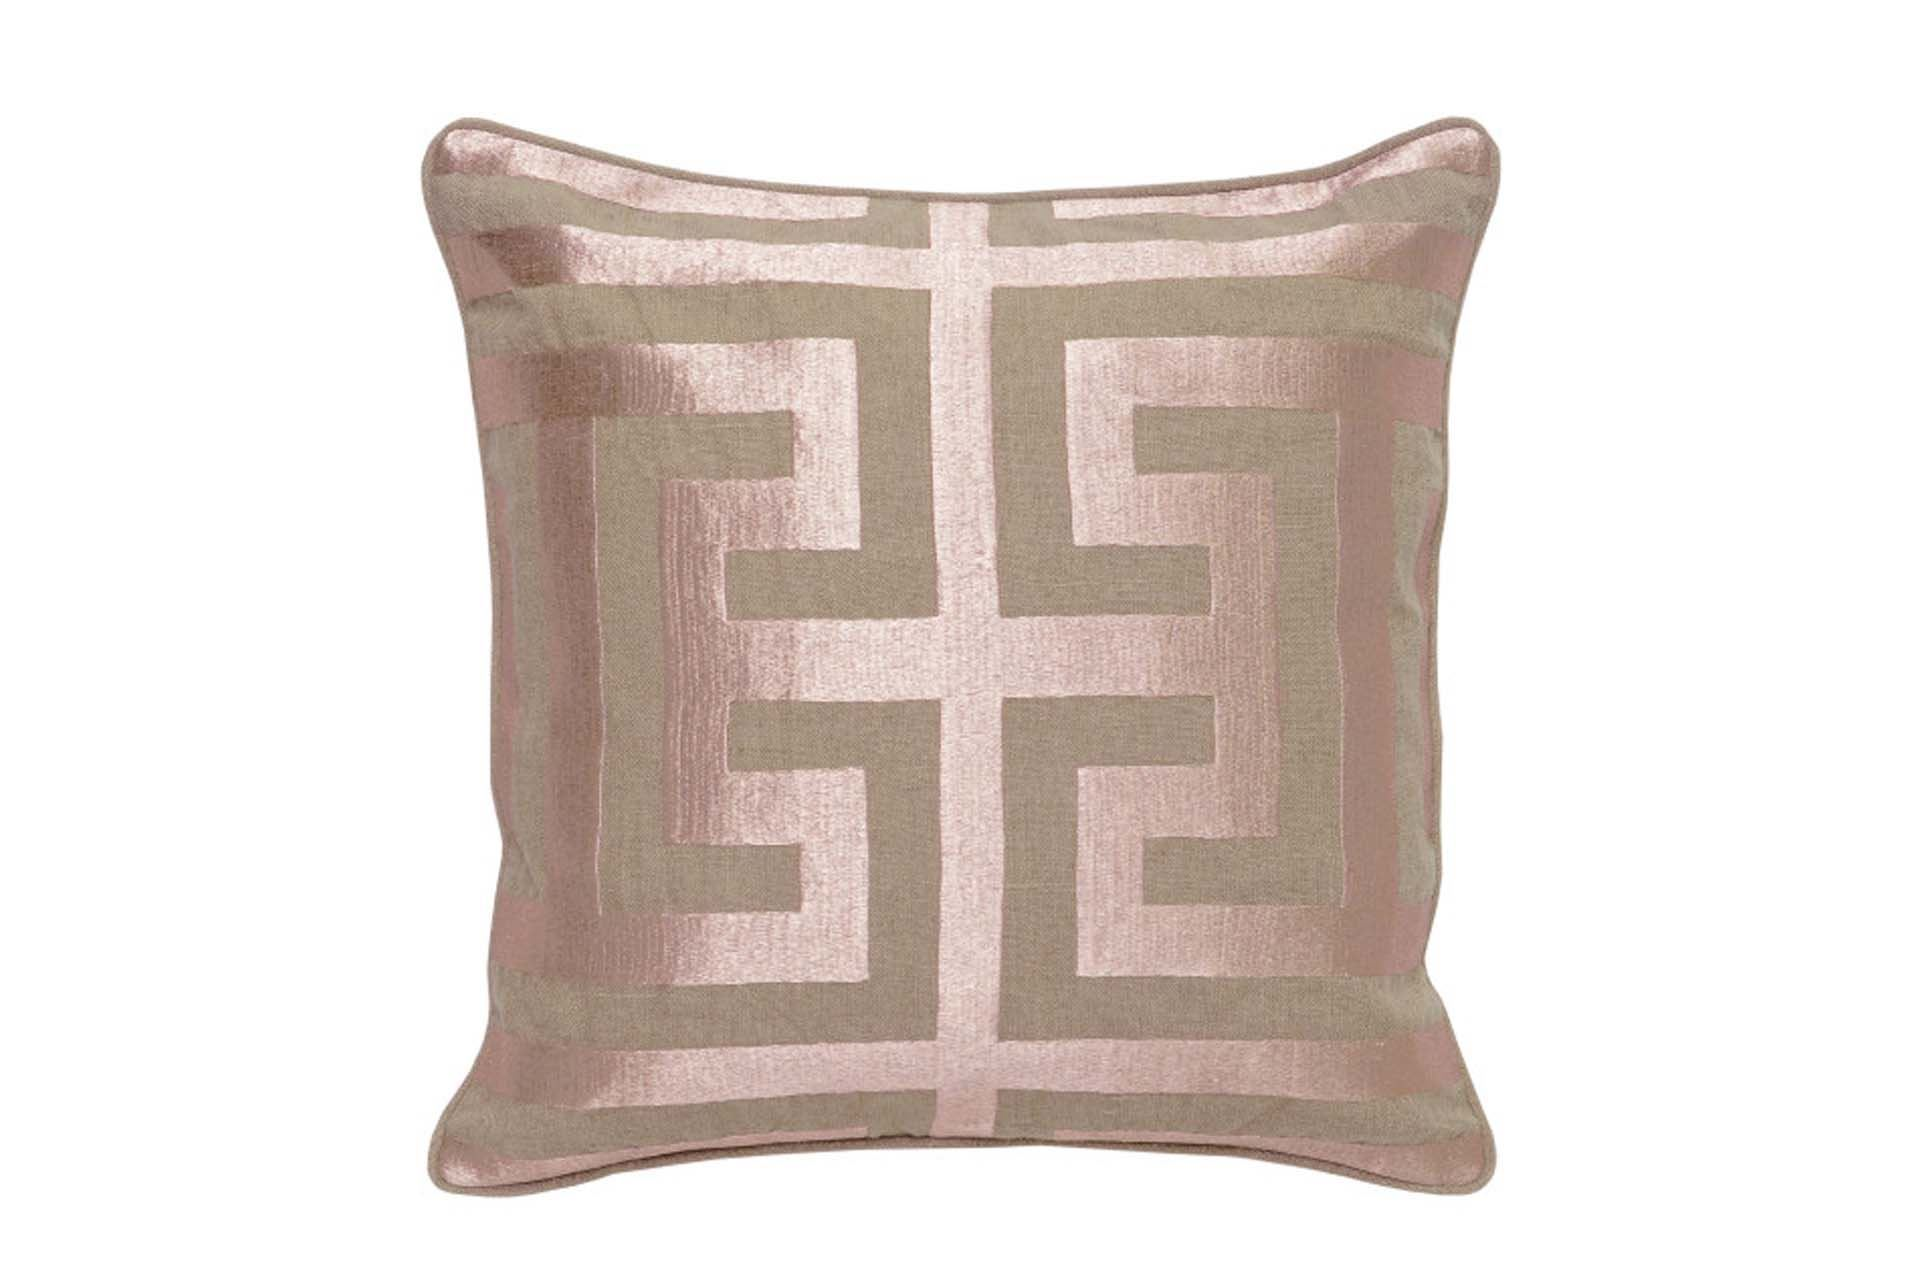 Decorative Pillows Rose Gold : Accent Pillow-Rose Gold Metallic Greek Key 22X22 - Living Spaces